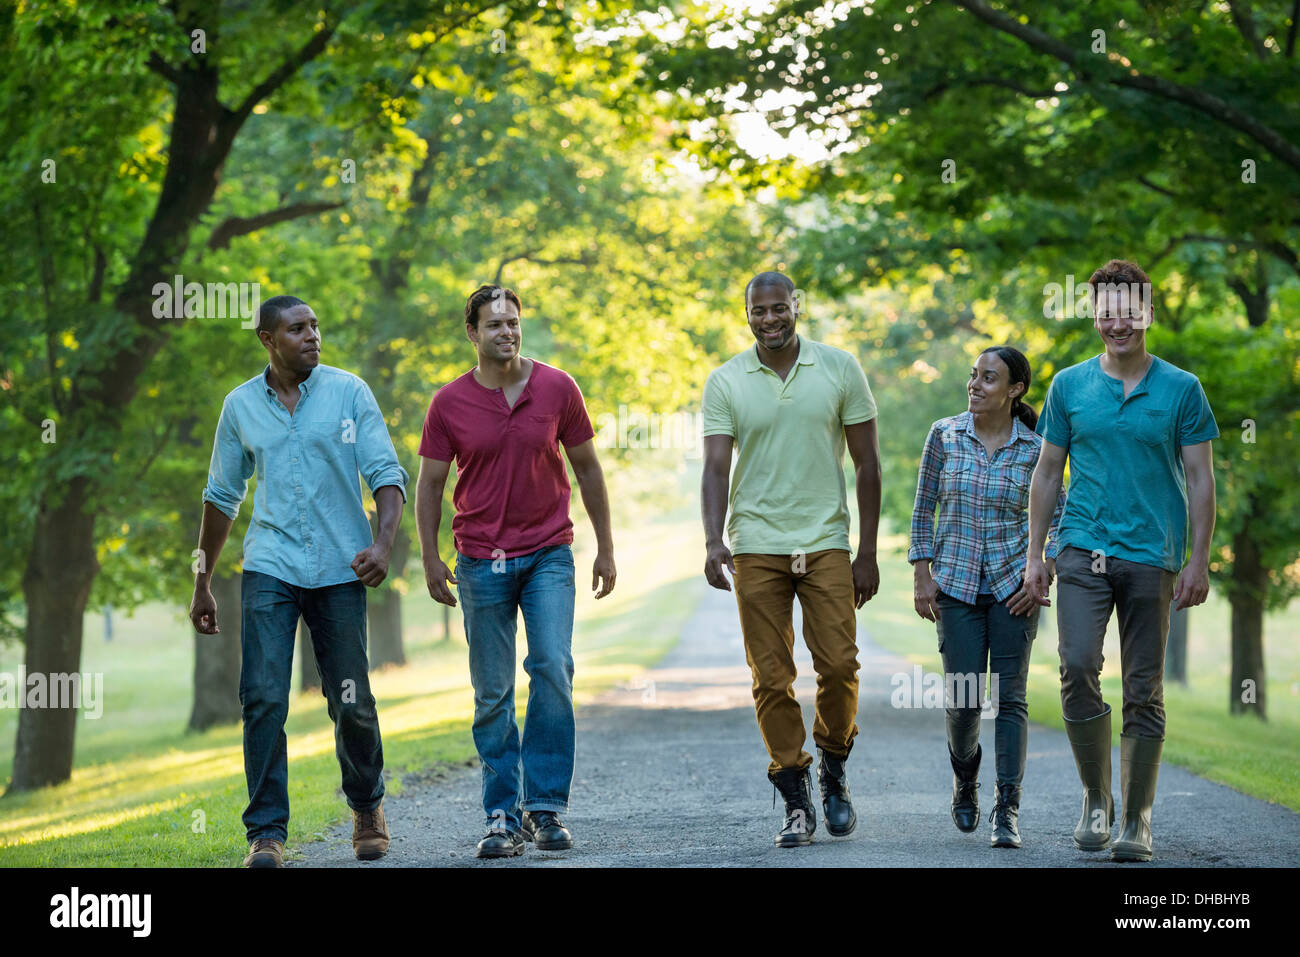 Five people walking down a tree lined avenue in the countryside. - Stock Image